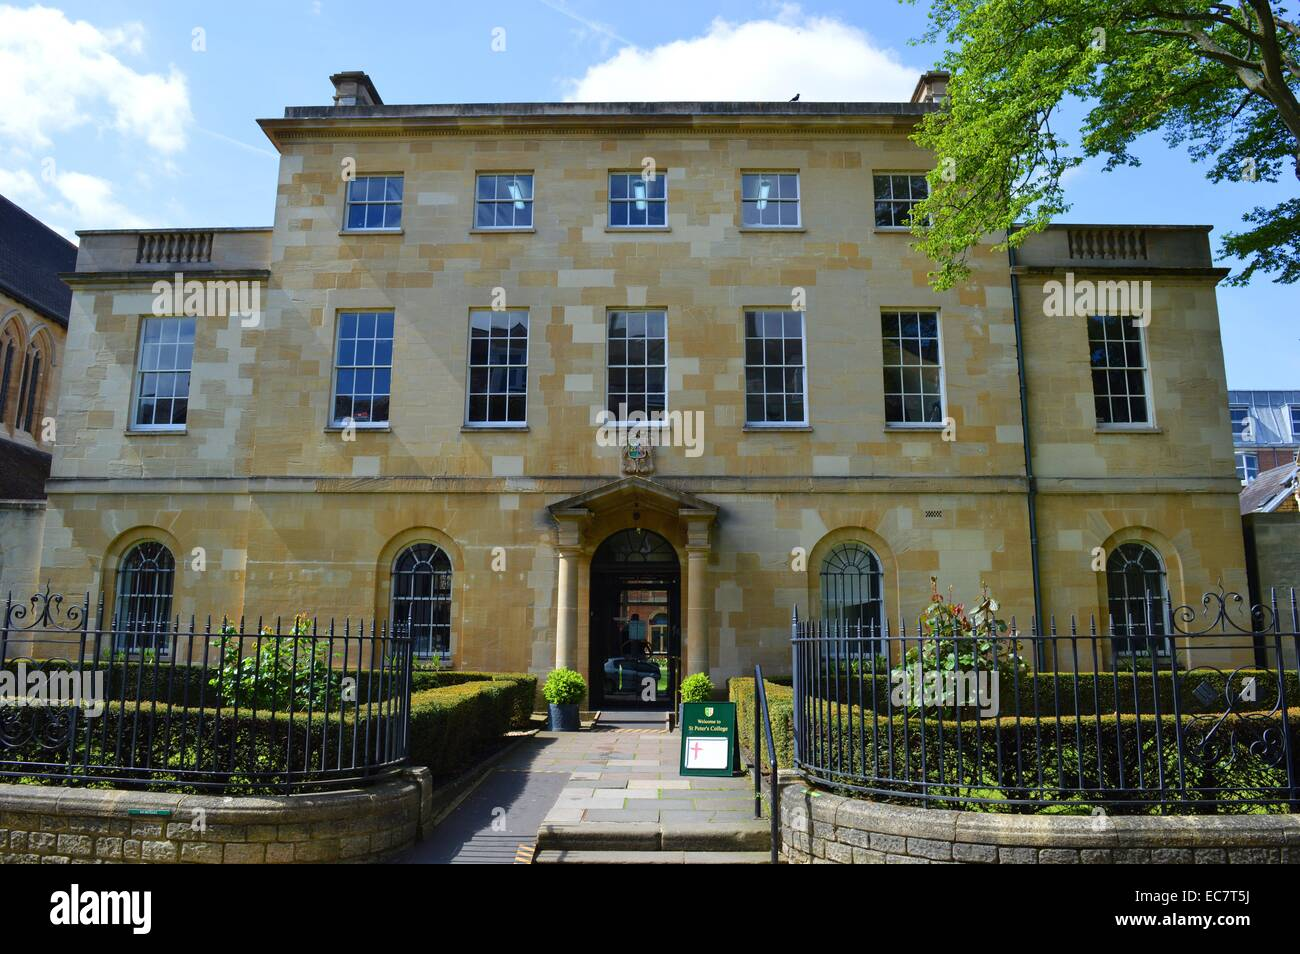 St Peter's College is one of the constituent colleges of the University of Oxford, - Stock Image